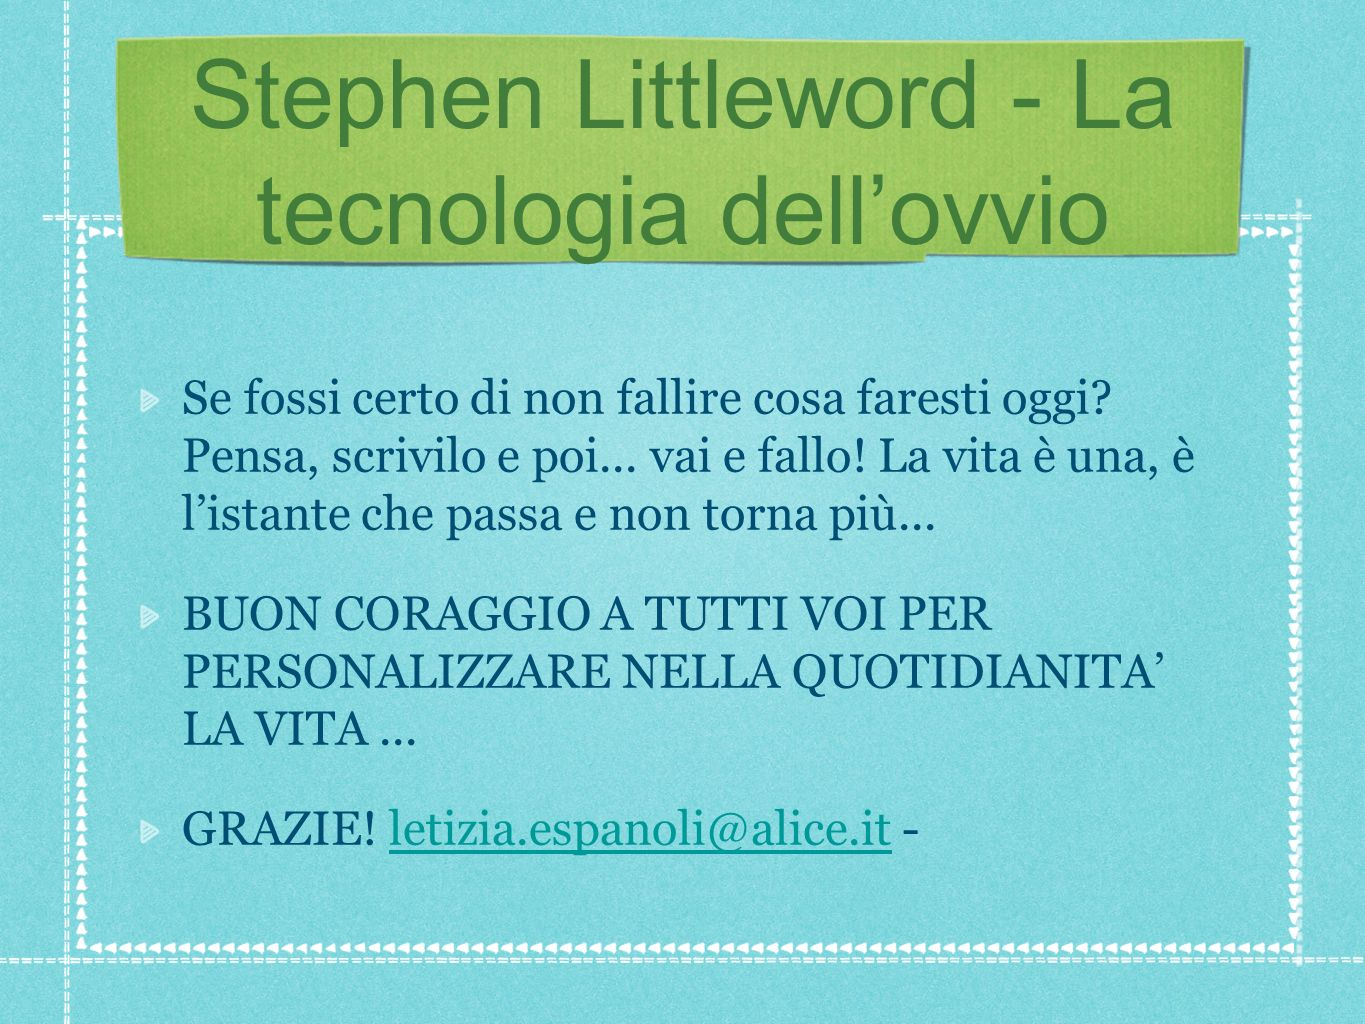 Stephen Littleword - La tecnologia dell'ovvio